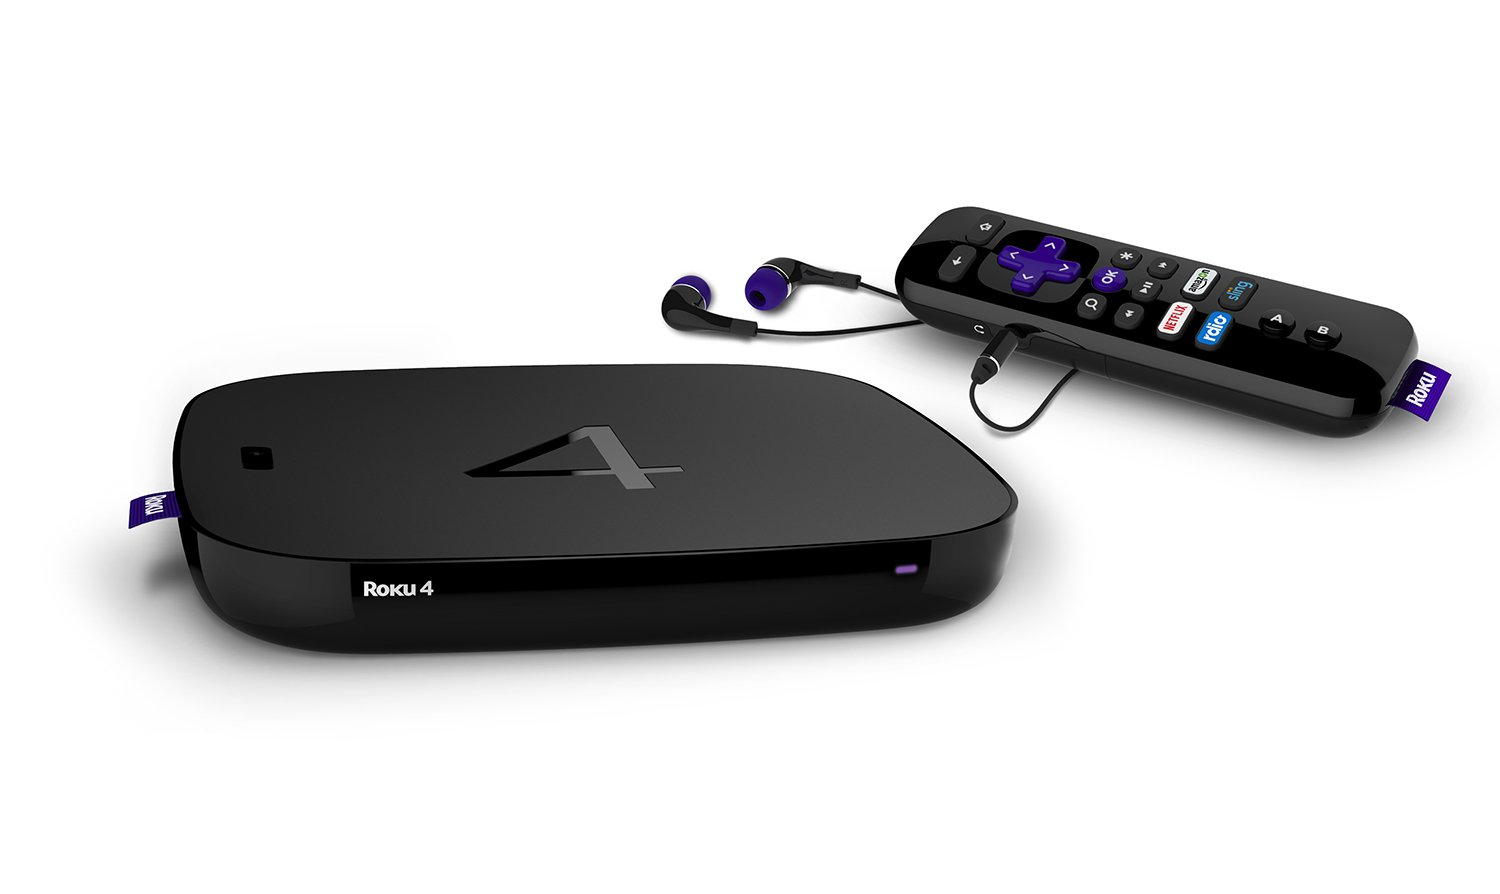 Roku 4 | HD and 4K UHD Streaming Media Player with Enhanced Remote (Voice Search, Lost Remote Finder, and Headphone), Quad-Core Processor, Dual-Band Wi-Fi, Ethernet, and USB Port by Roku